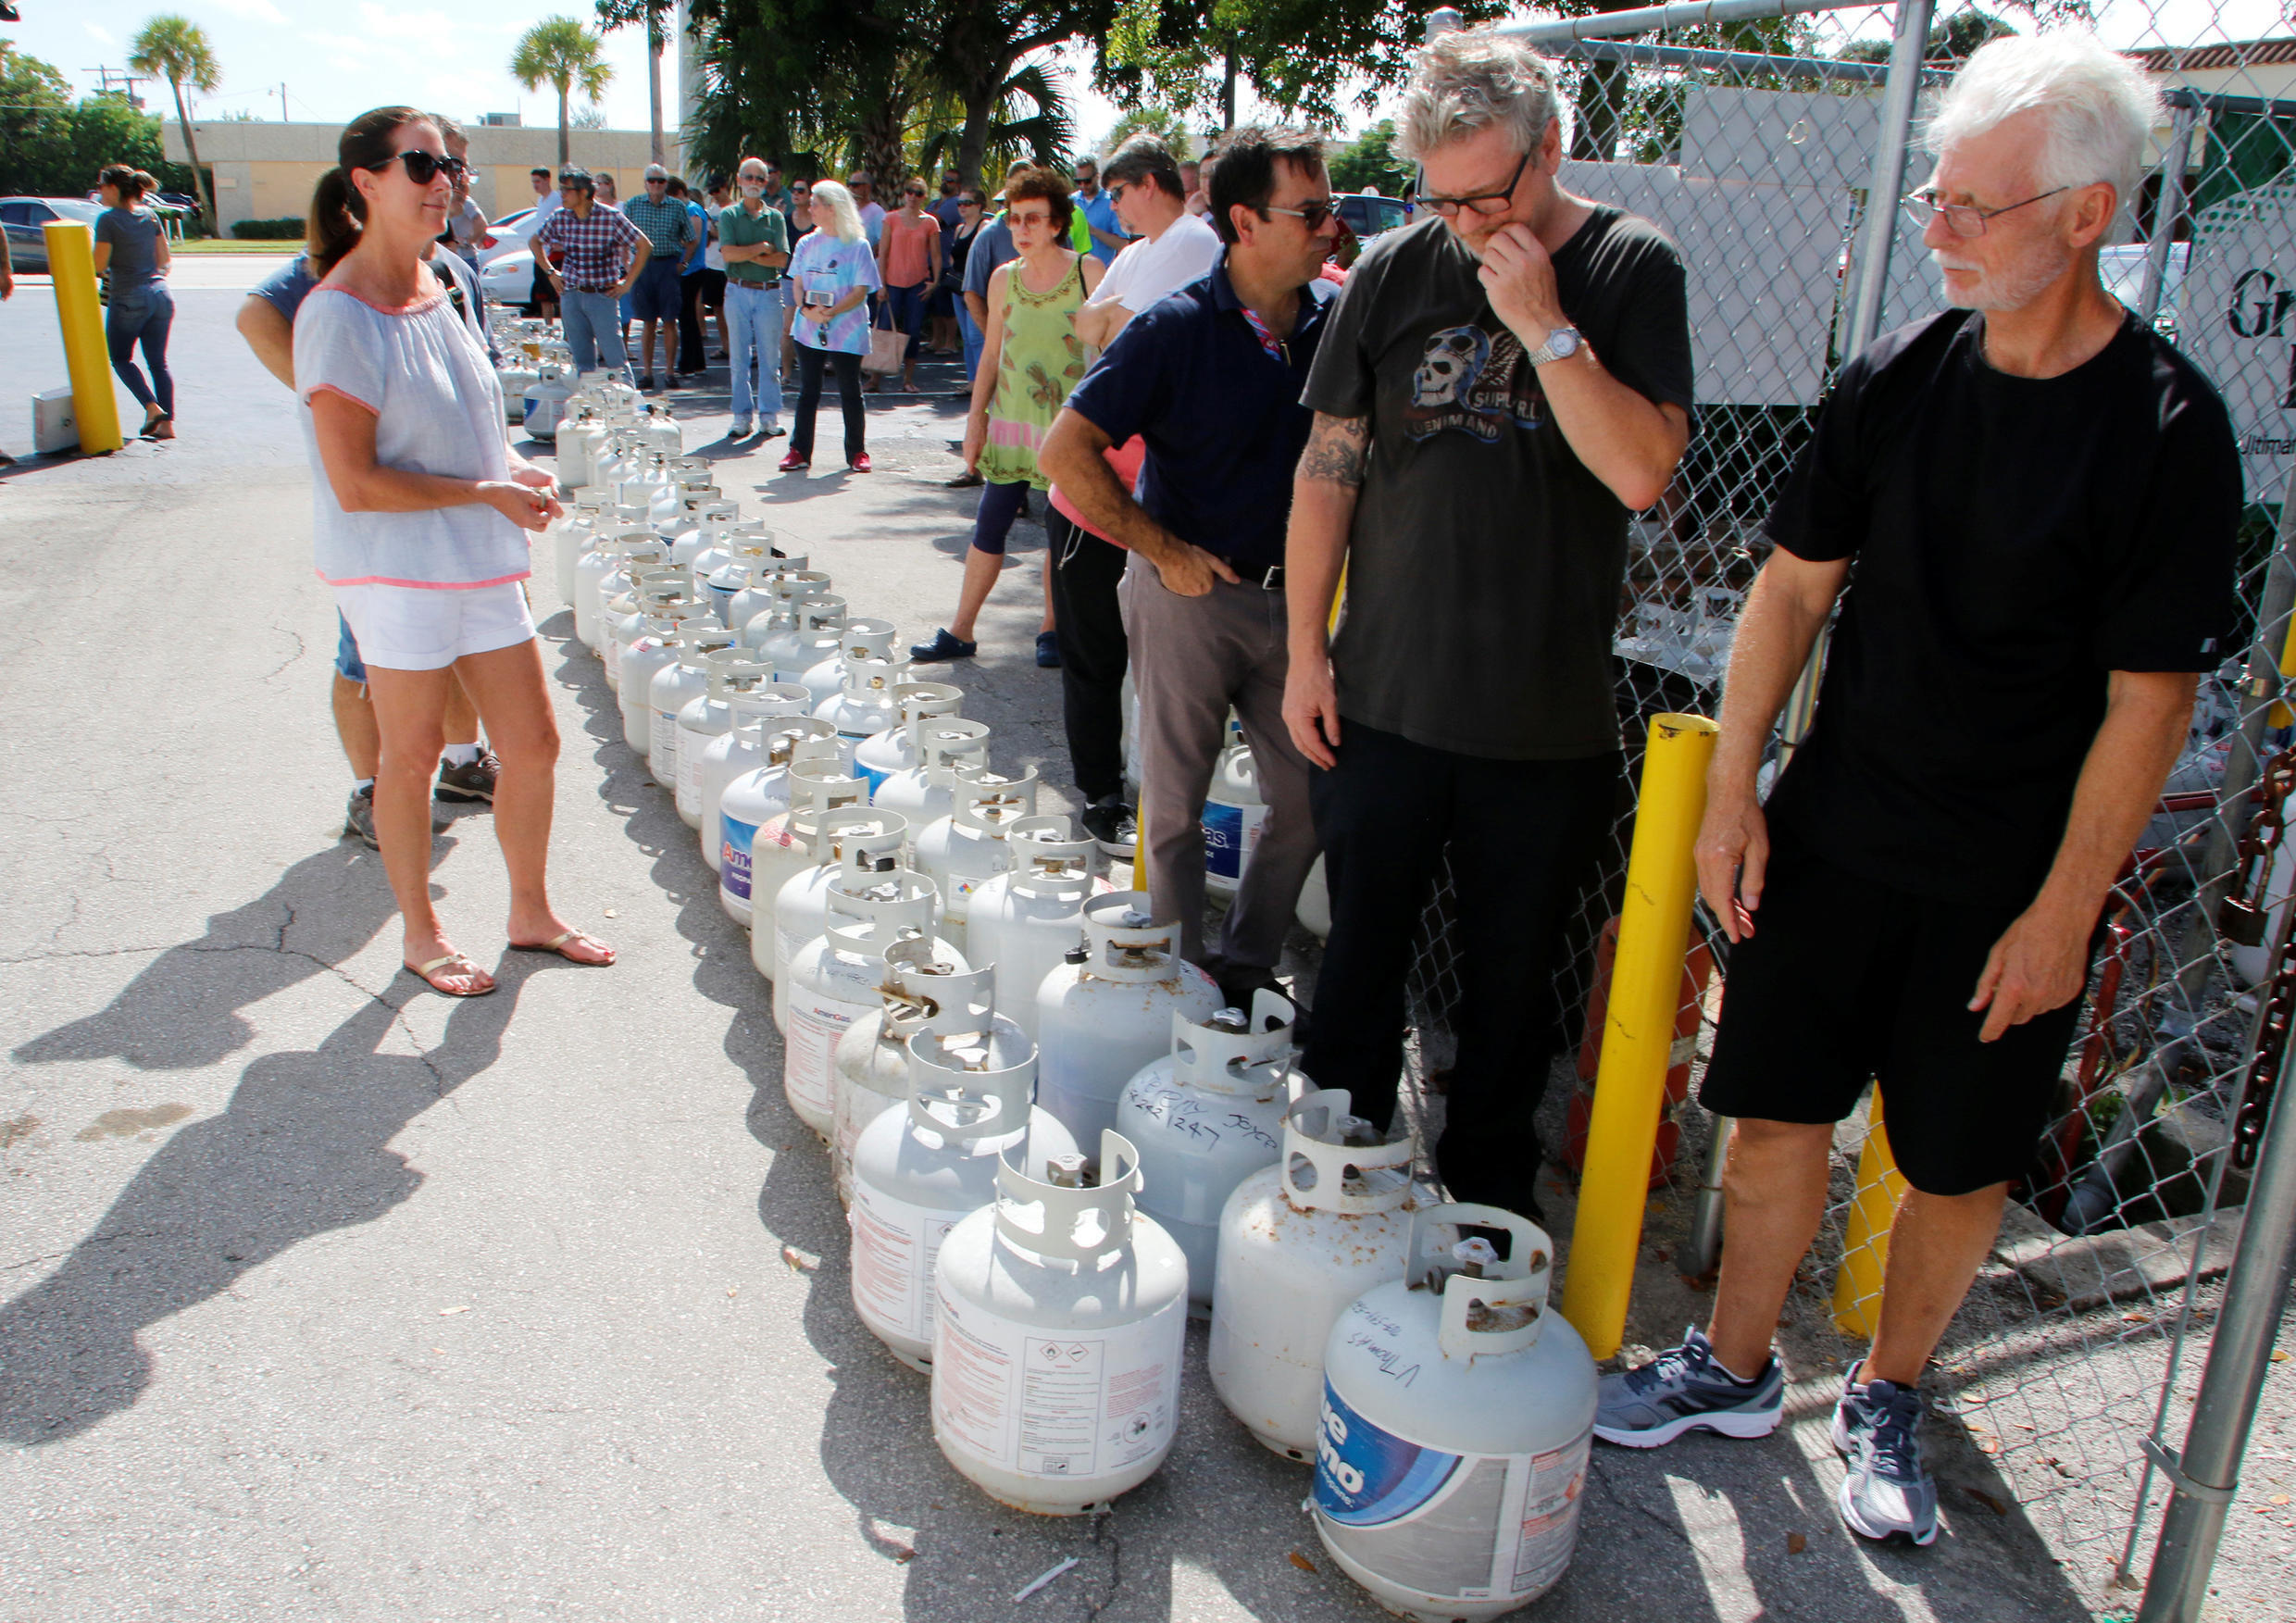 Residents wait in line to purchase propane gas at Lee's Barbecue Center in Boca Raton, Florida, as they continue to prepare for Hurricane Irma's expected arrival, September 6, 2017. Residents.